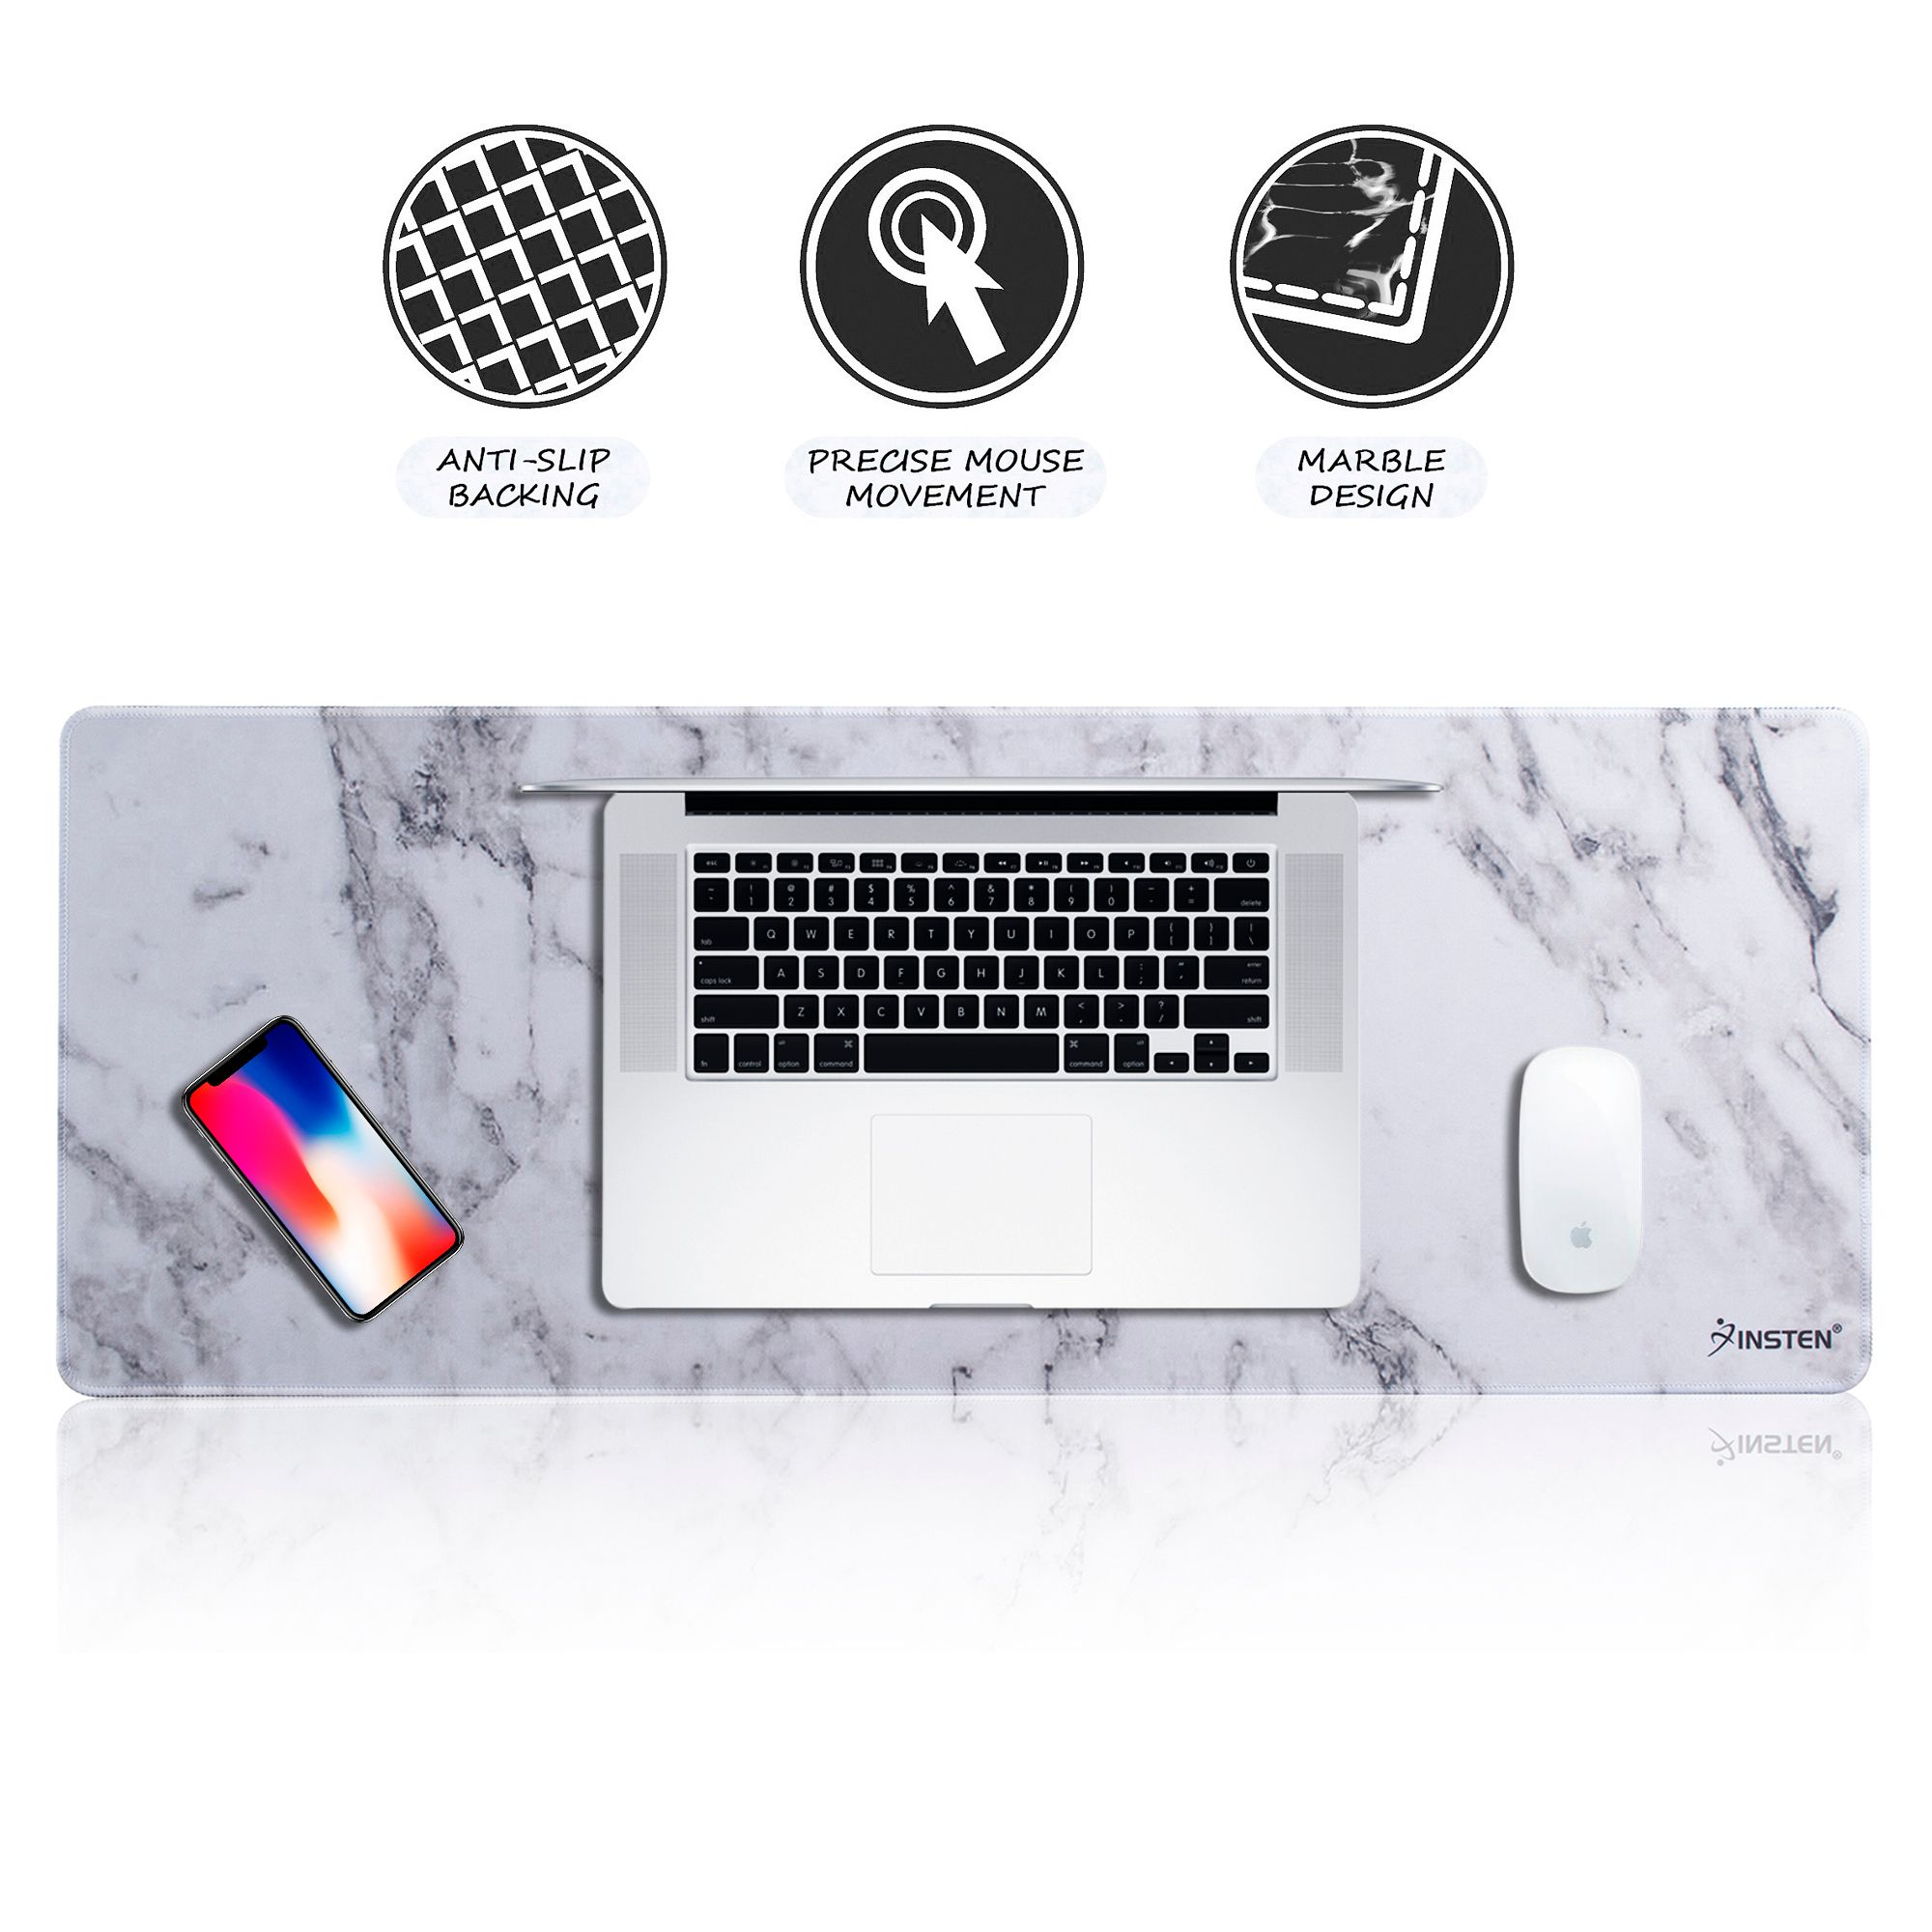 """Insten Extended Gaming Mouse Pad Marble Design Long Mat (Size: 31"""" x 12"""") with Low Friction Smooth Surface and Non-Slip Backing for Desktop Mouse Keyboard Laptop White"""